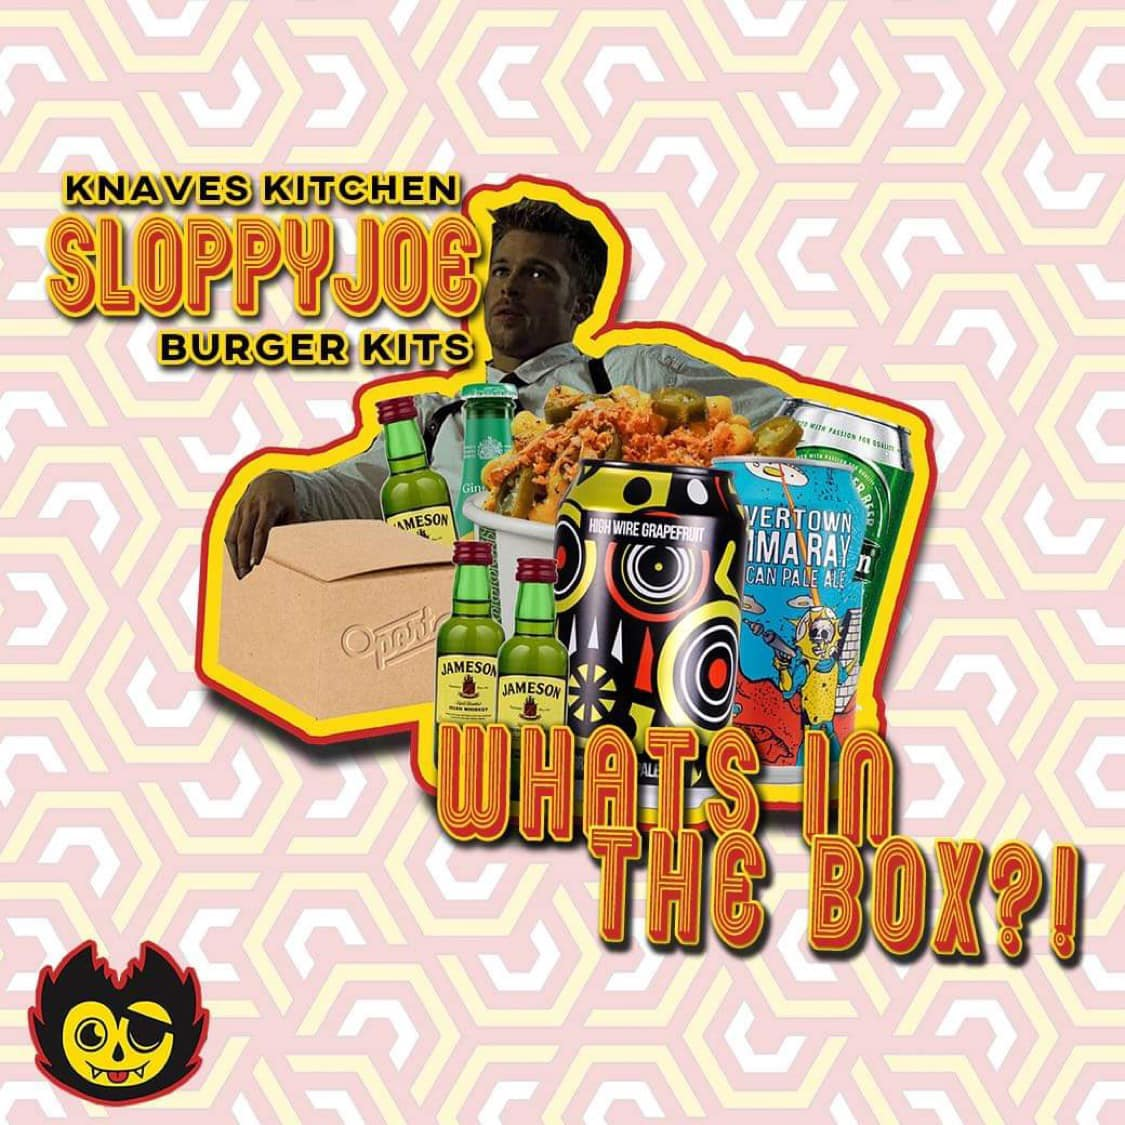 Knave's Kitchen at home burger box launch